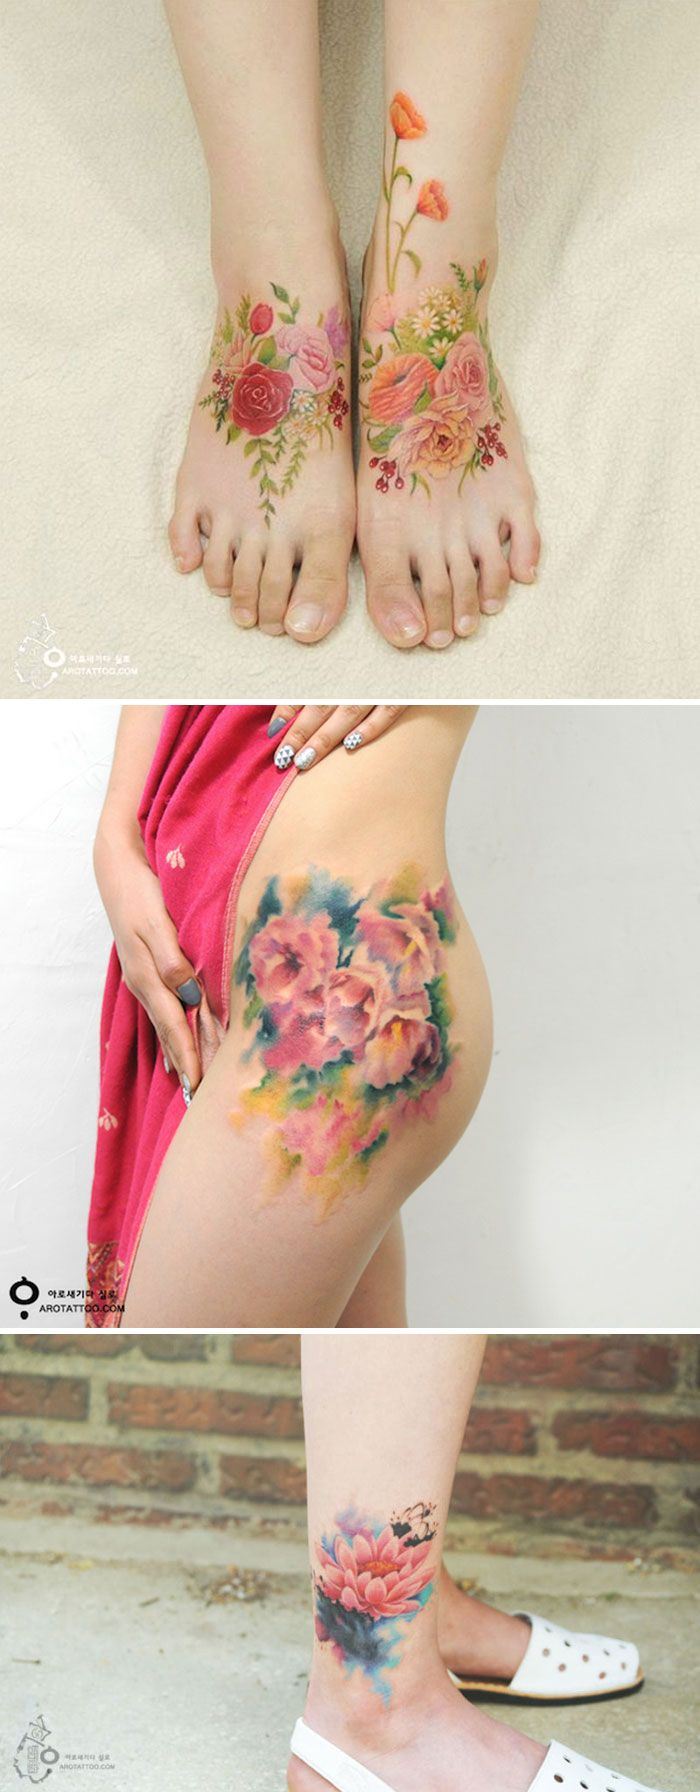 15+ Tattoo Artists Who Immortalize The Delicate Beauty of Flowers   Bored Panda